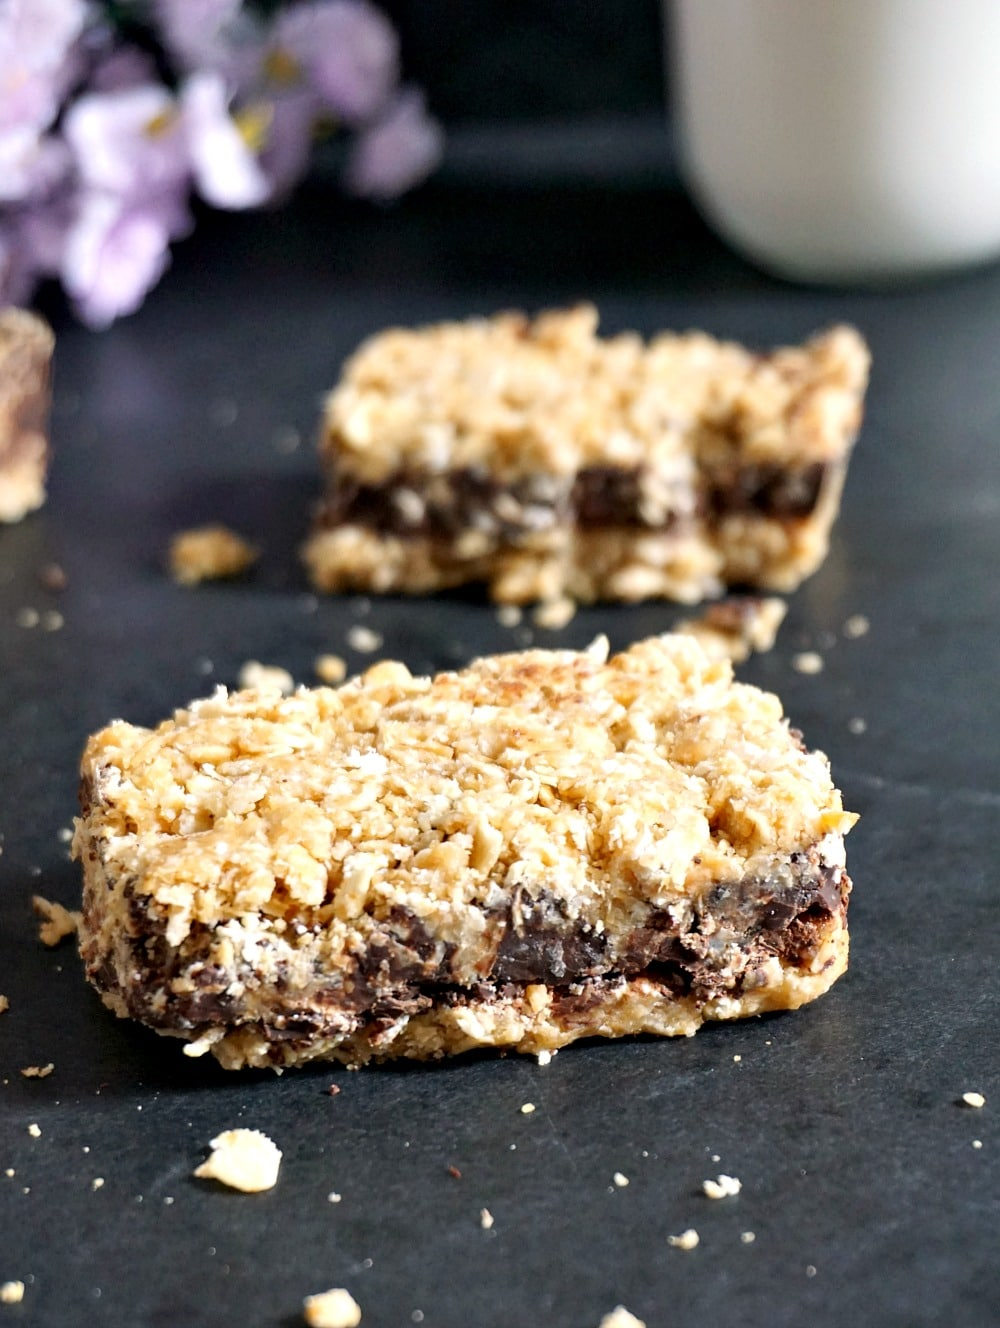 Healthy no-bake chocolate oat bars with peanut butter V+GF